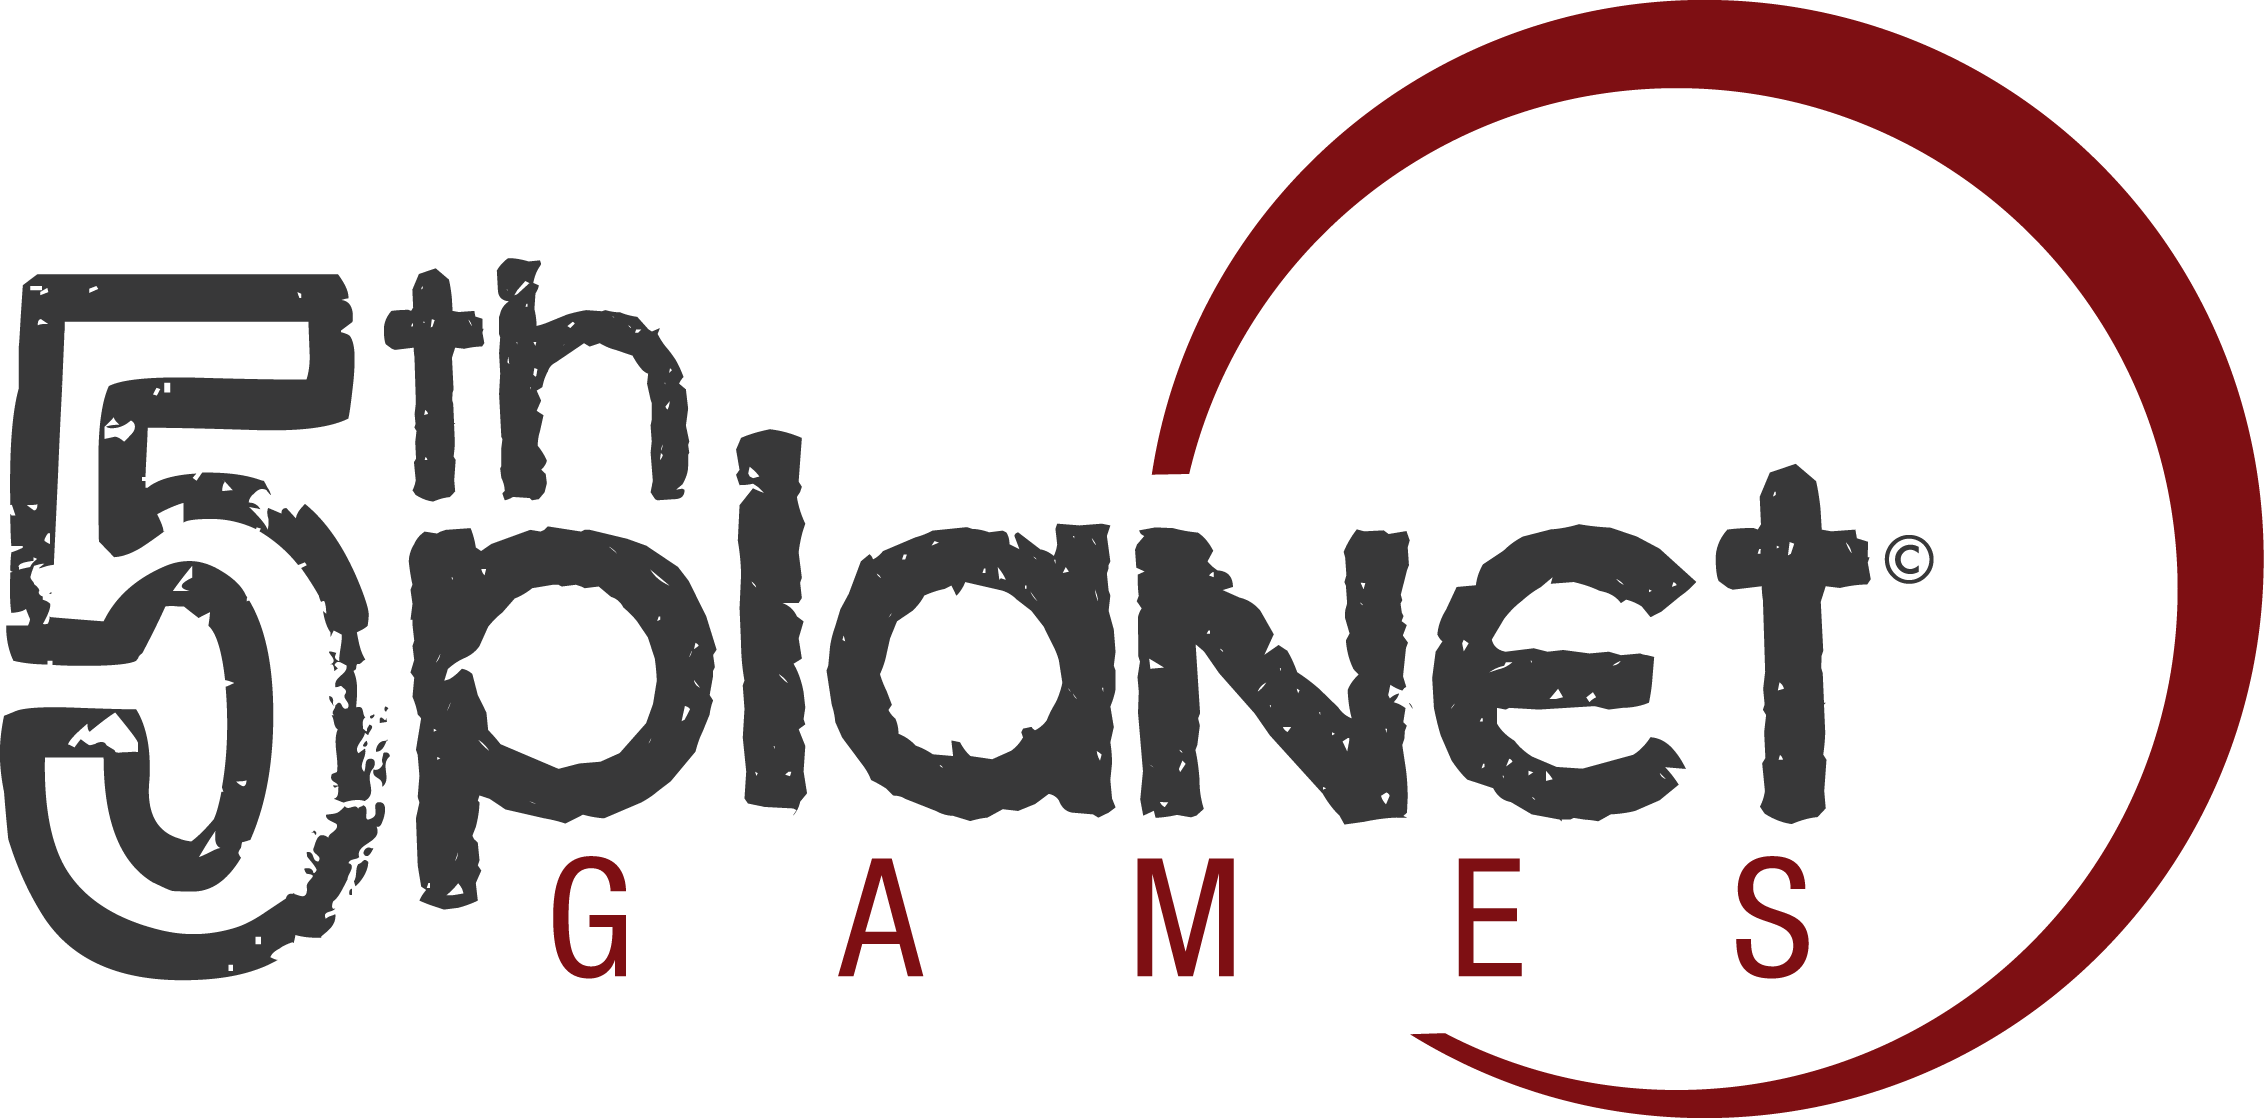 5th Planet Games